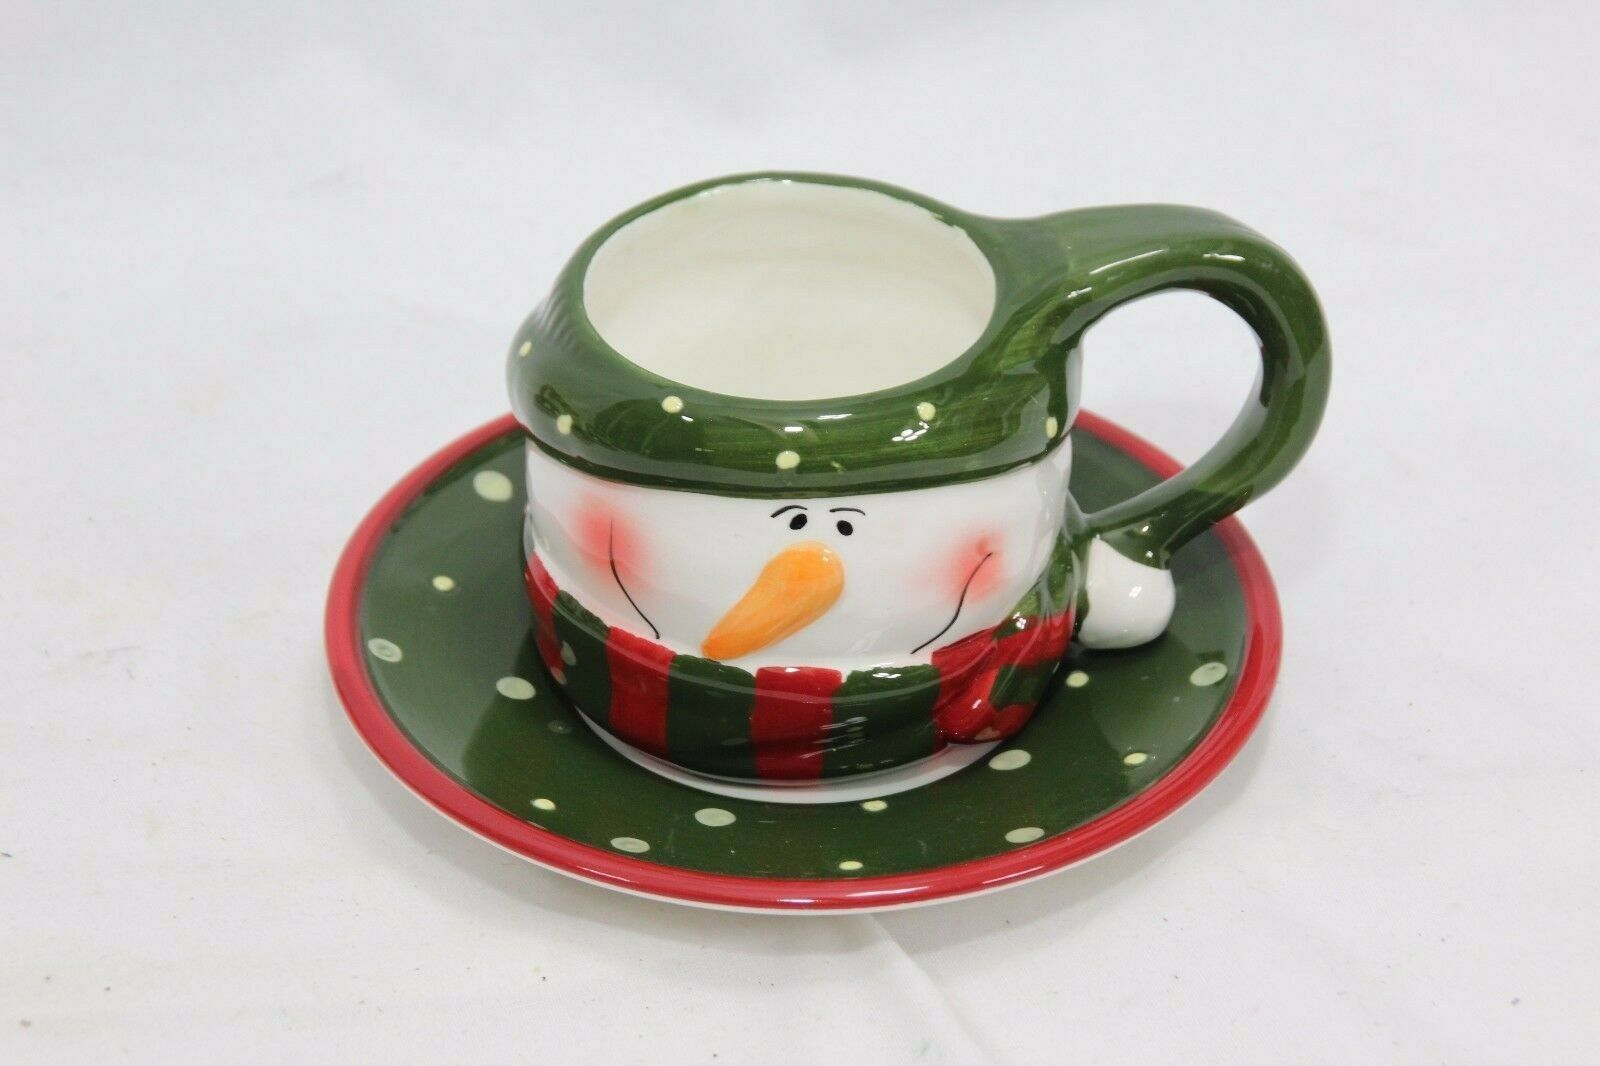 Snowman Xmas 4 Cups and 4 Saucers image 4